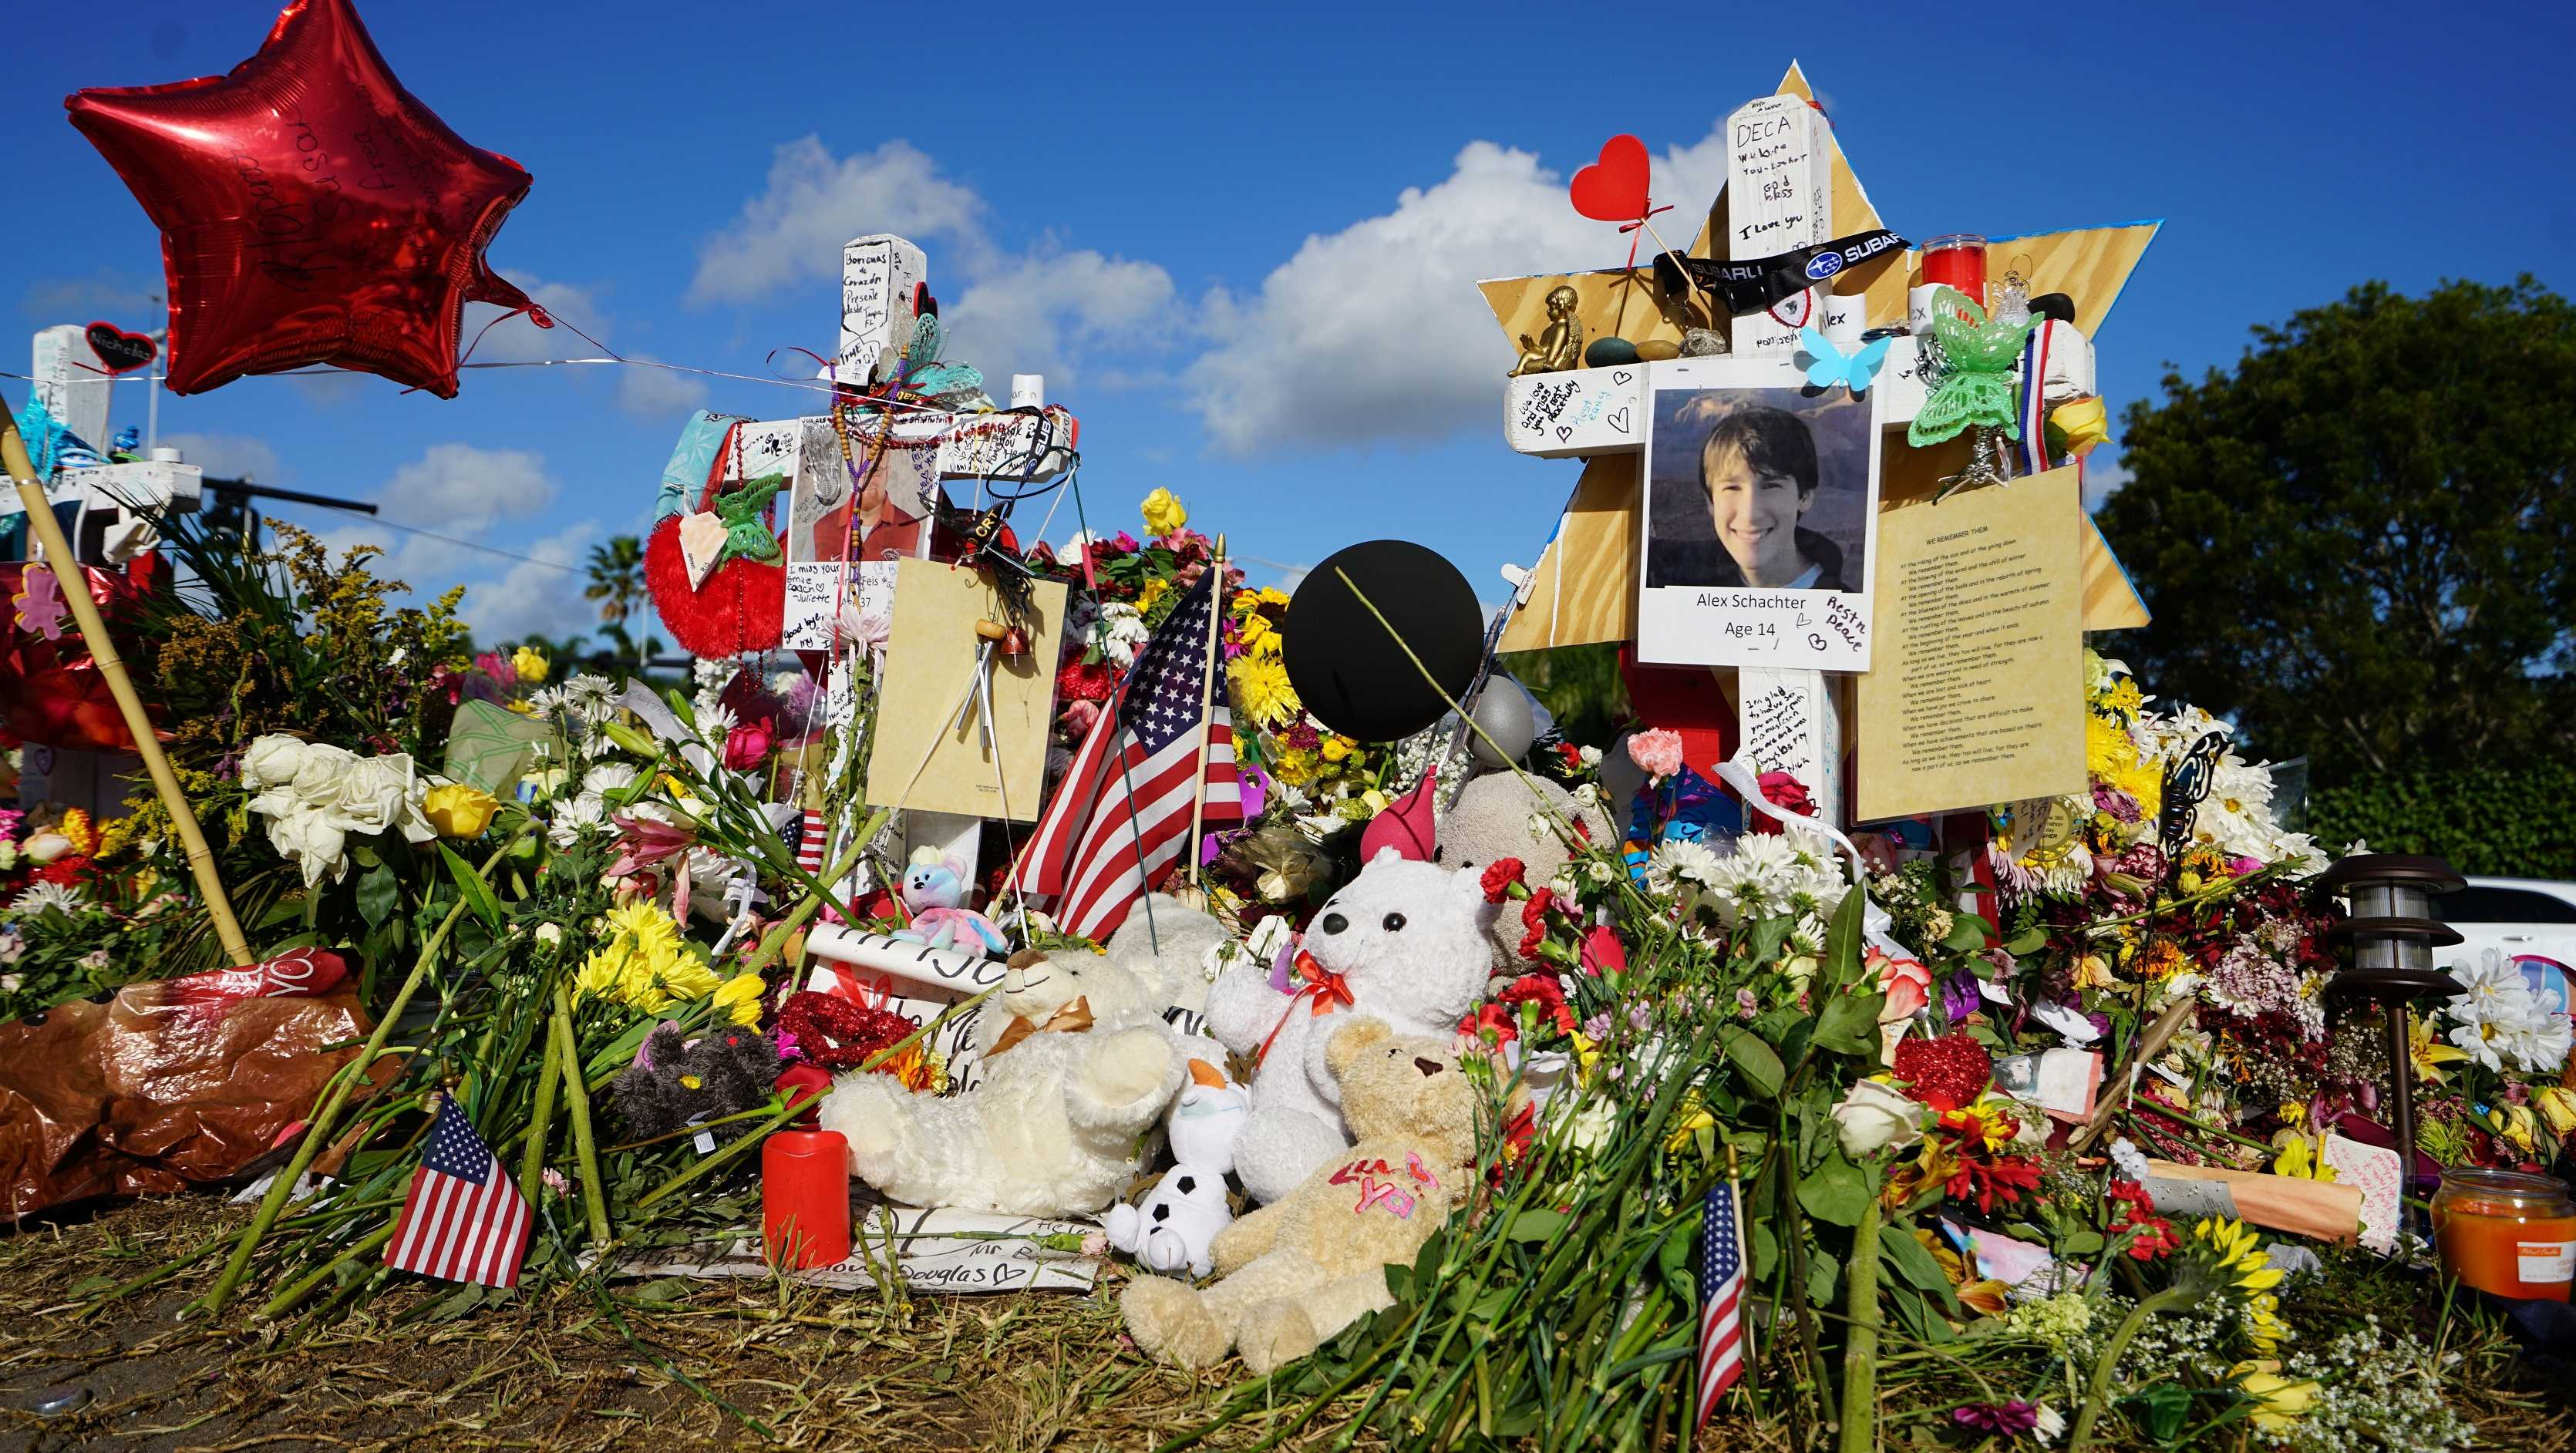 Memorial for slain students in Parkland, Florida. Marjory Stoneman Douglas High School is located in the Miami metropolitan area and part of the Broward County Public School district.